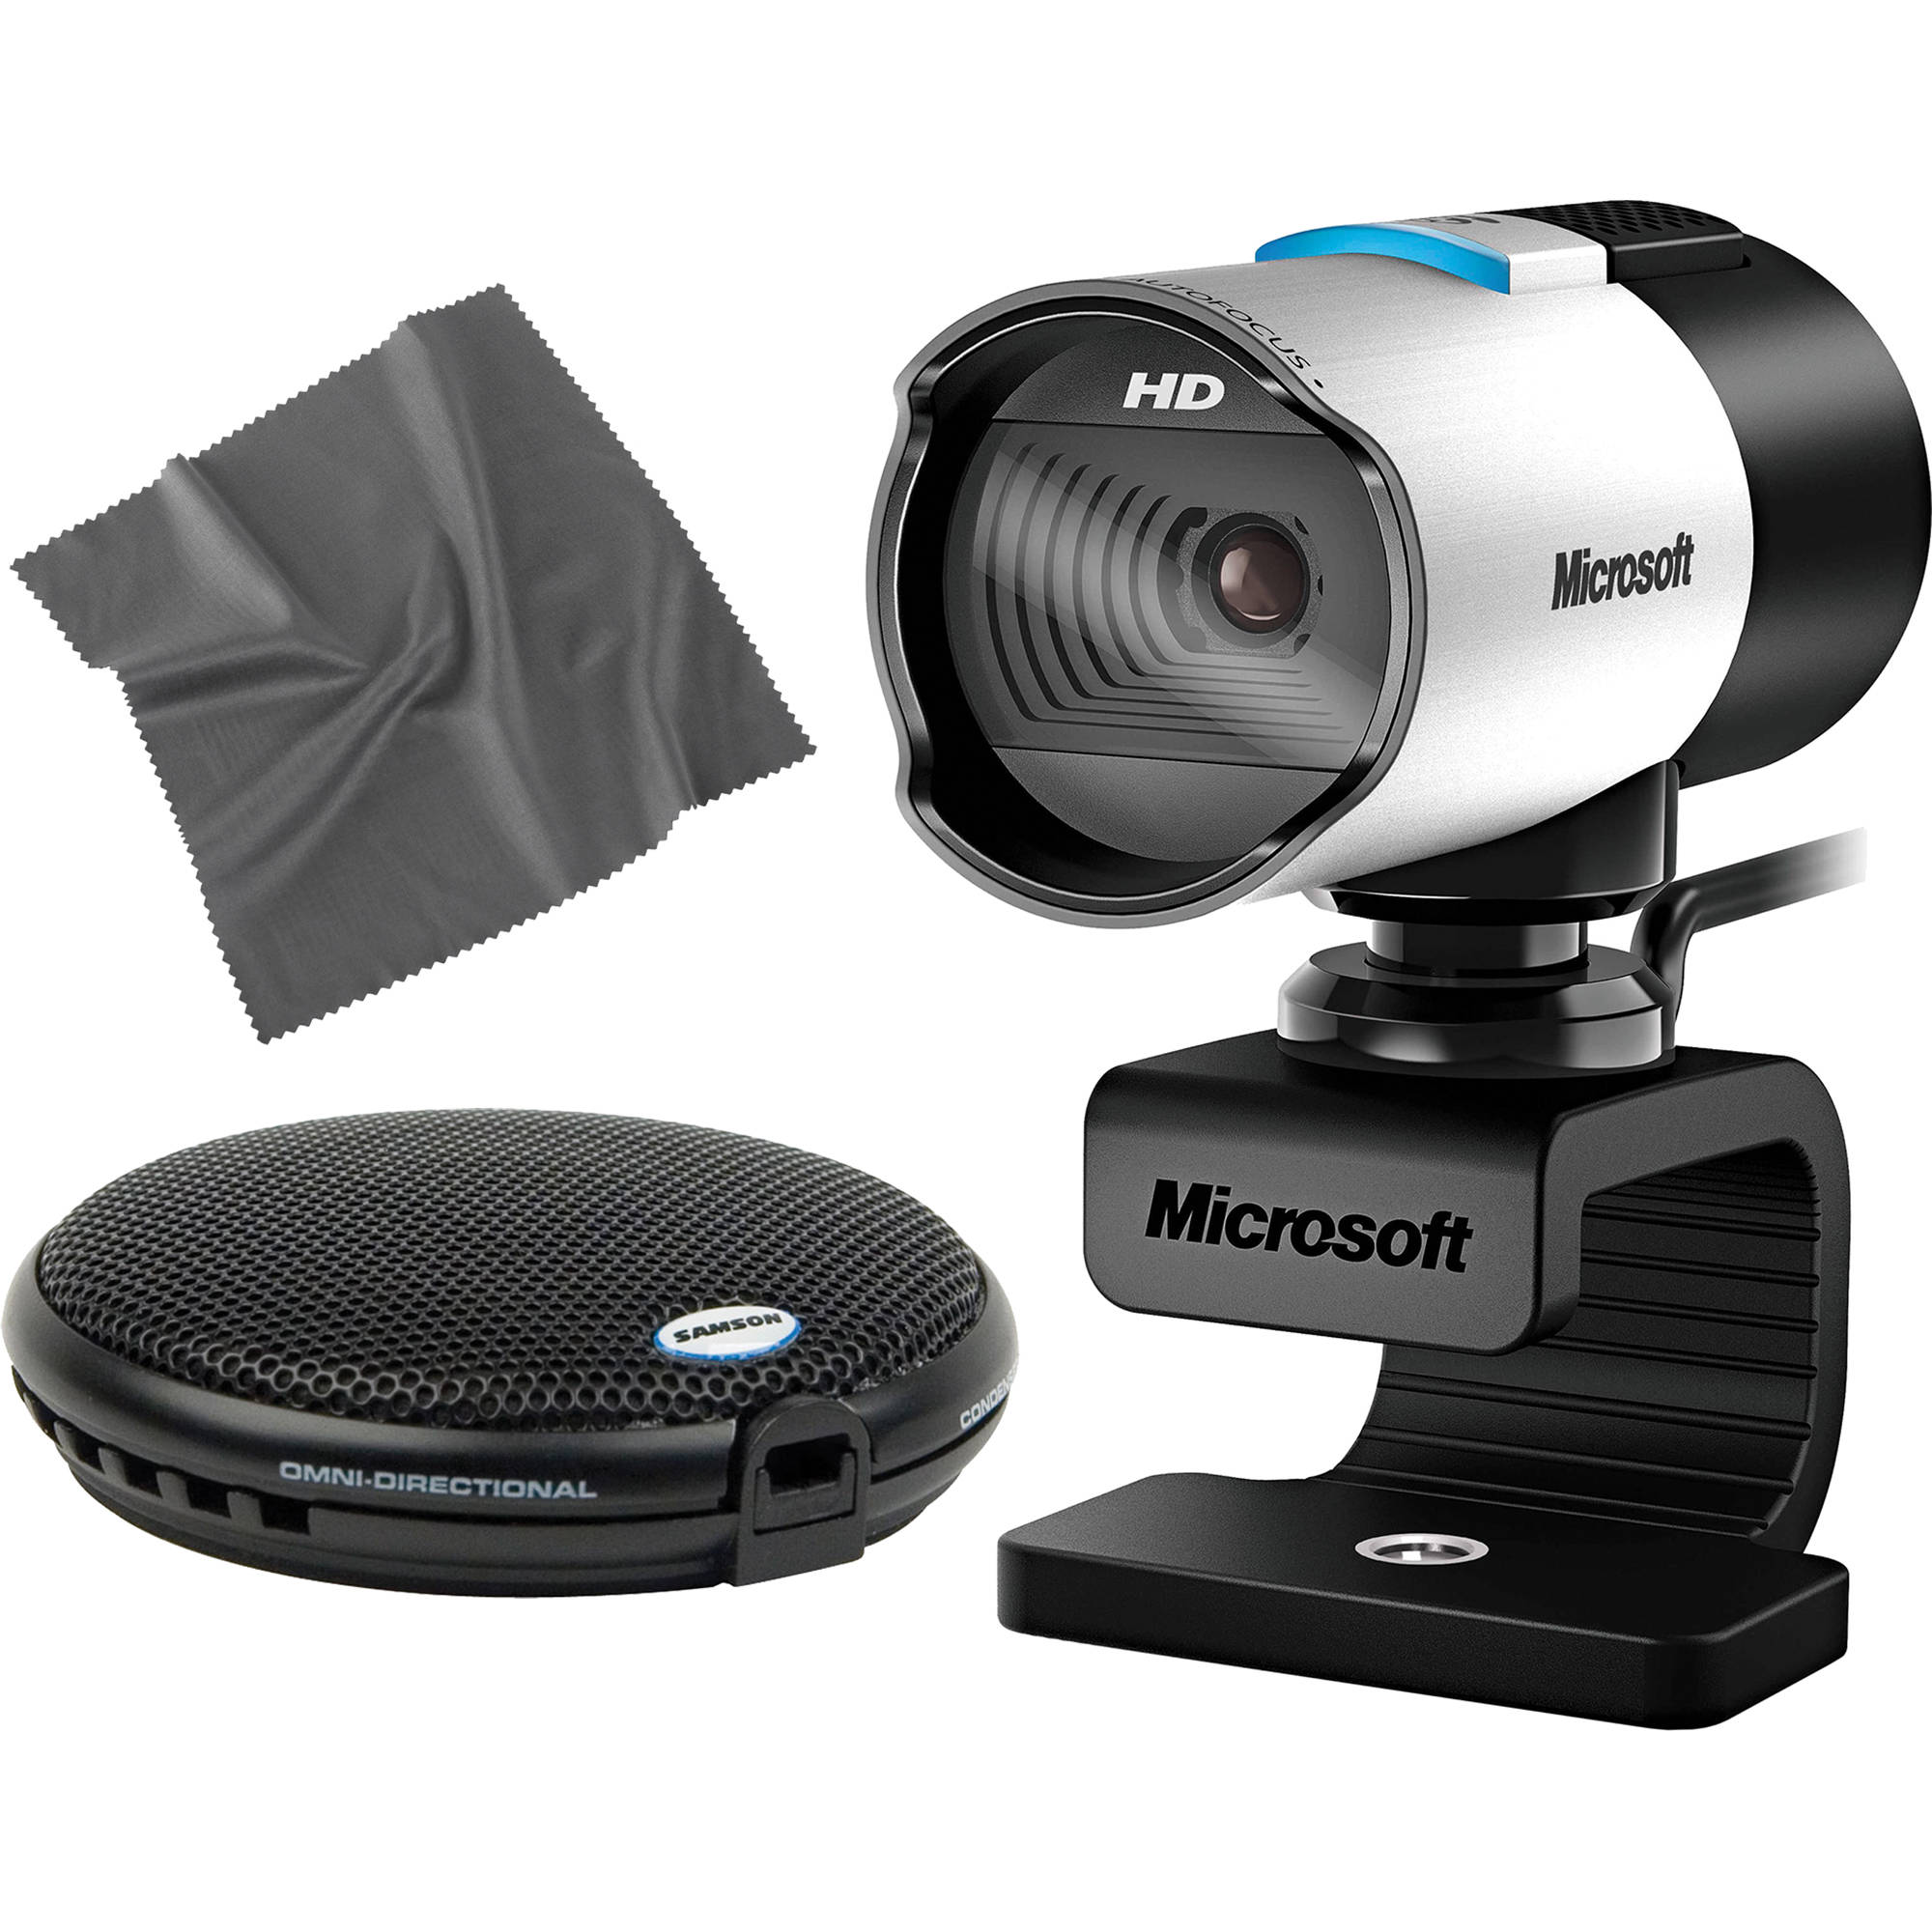 Microsoft Webcams & Headsets | B&H Photo Video